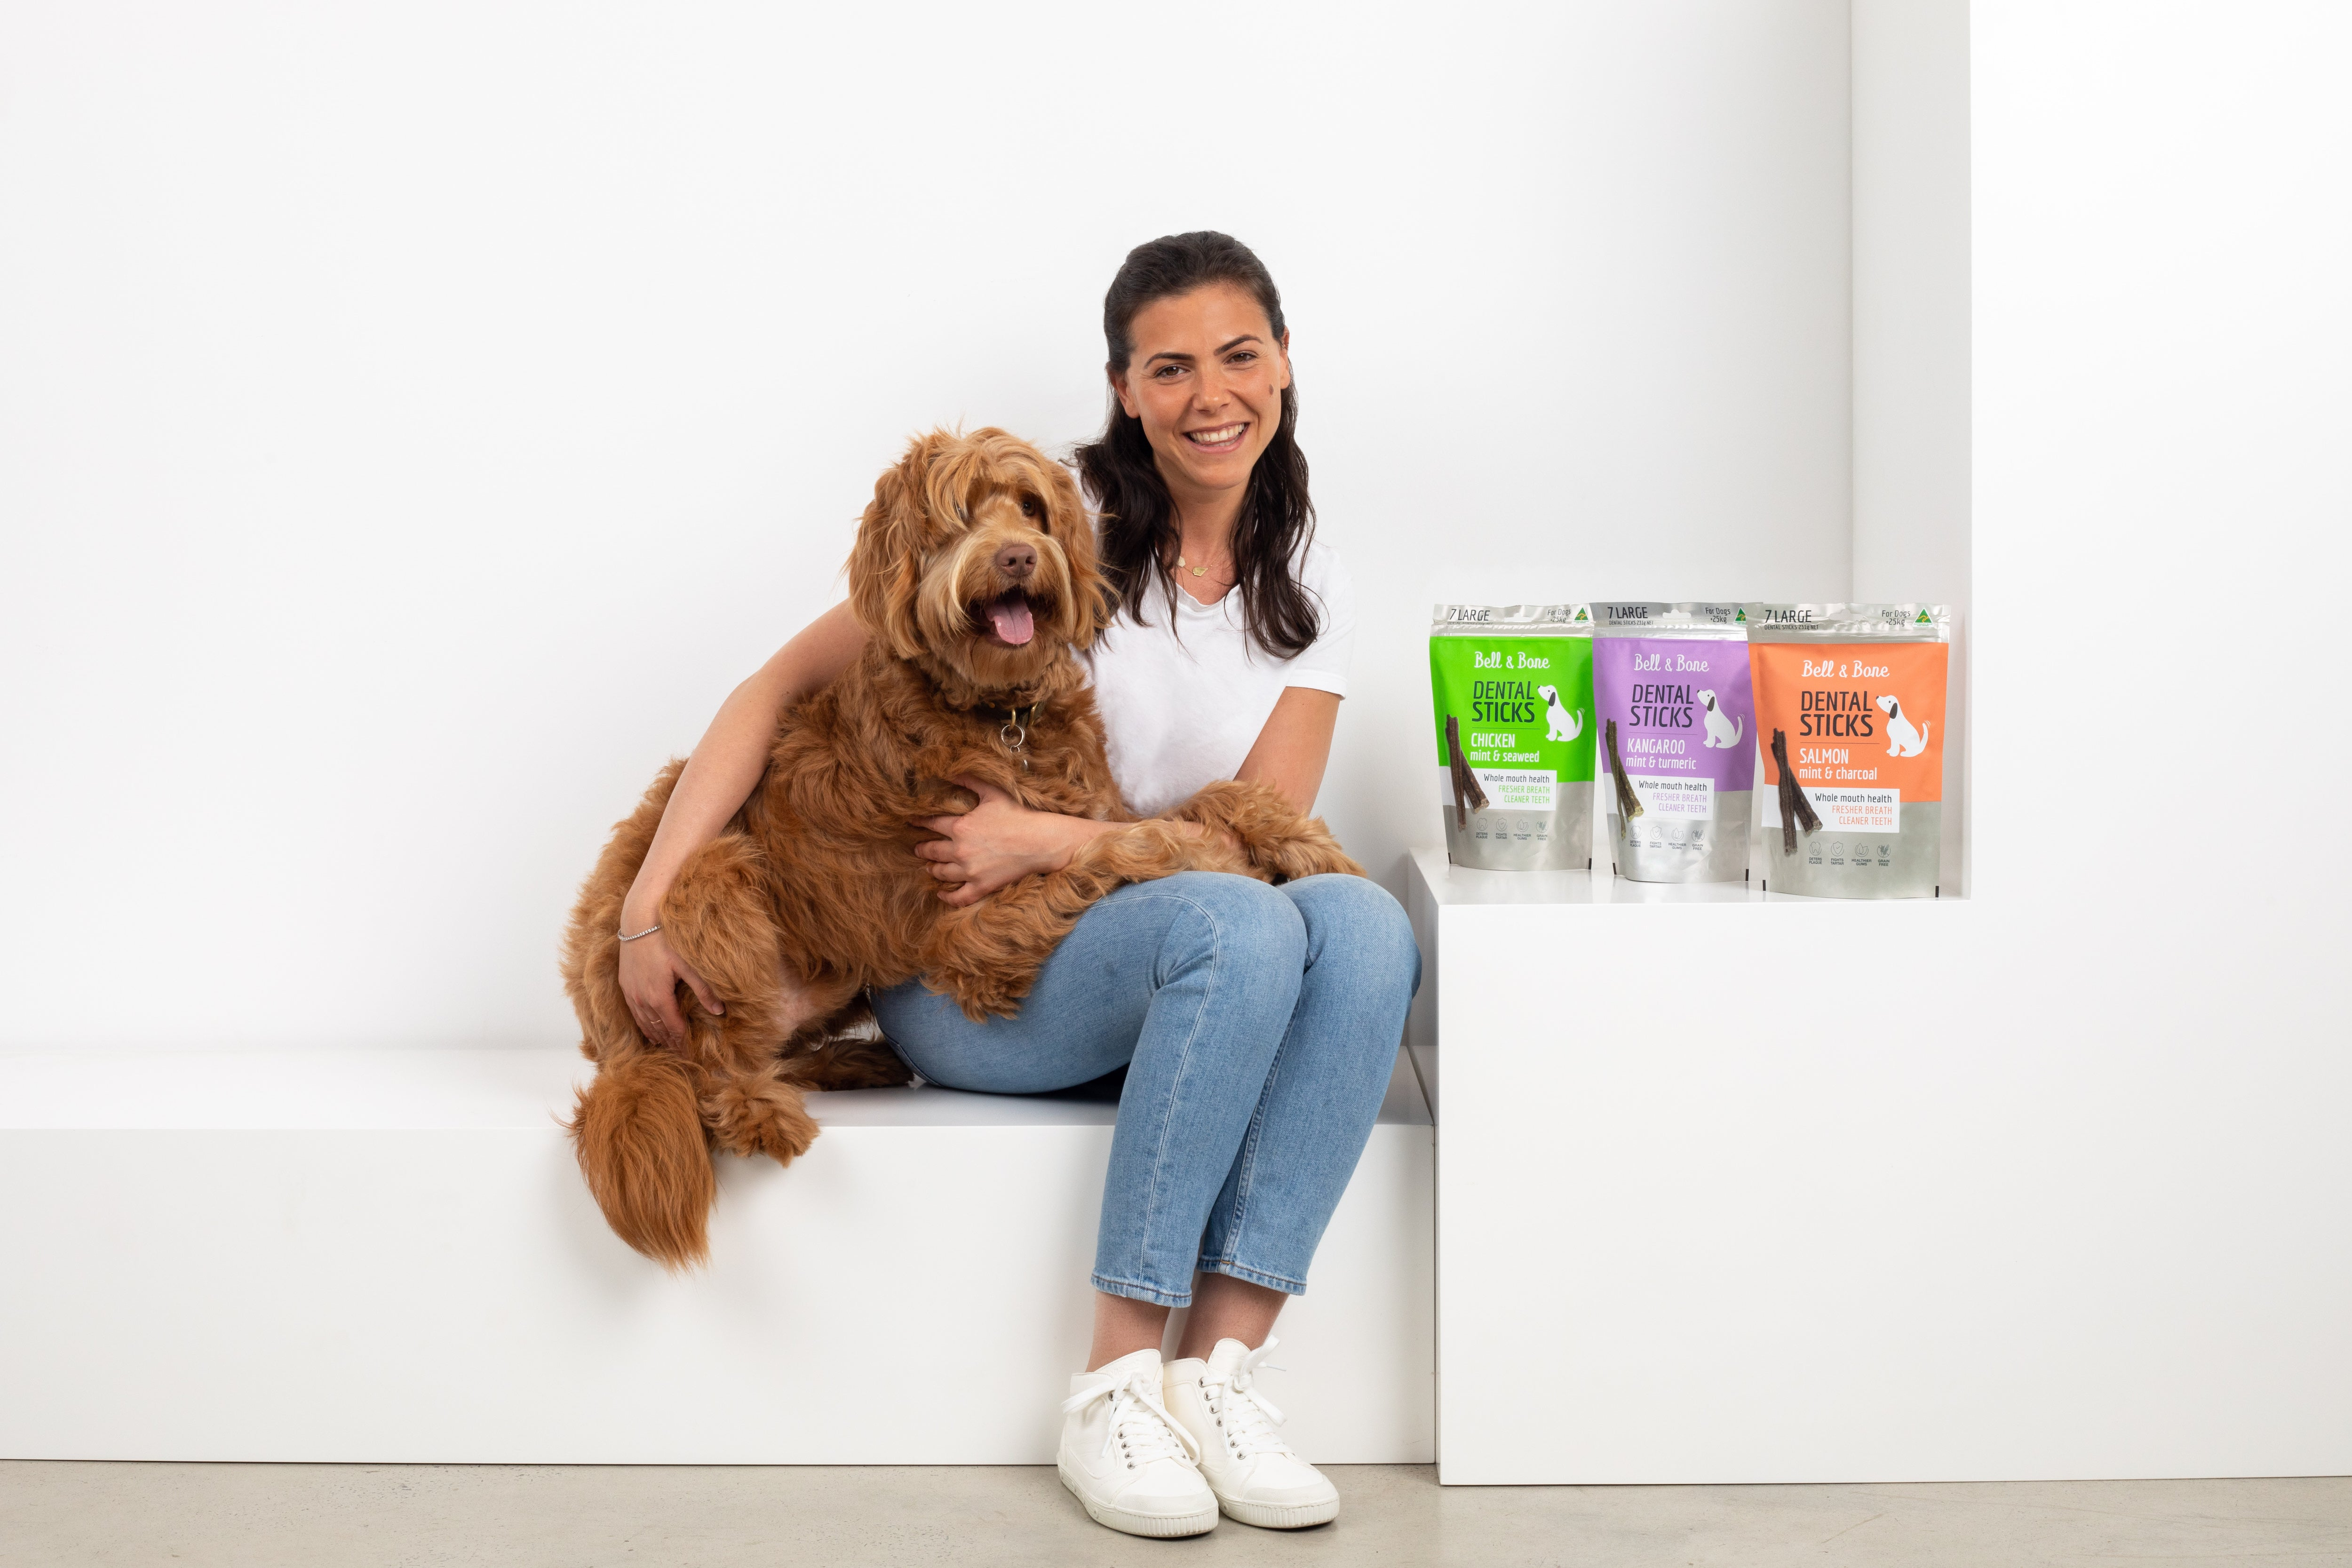 woman with a brown dog sitting next to 3 packs of Petzyo dental sticks